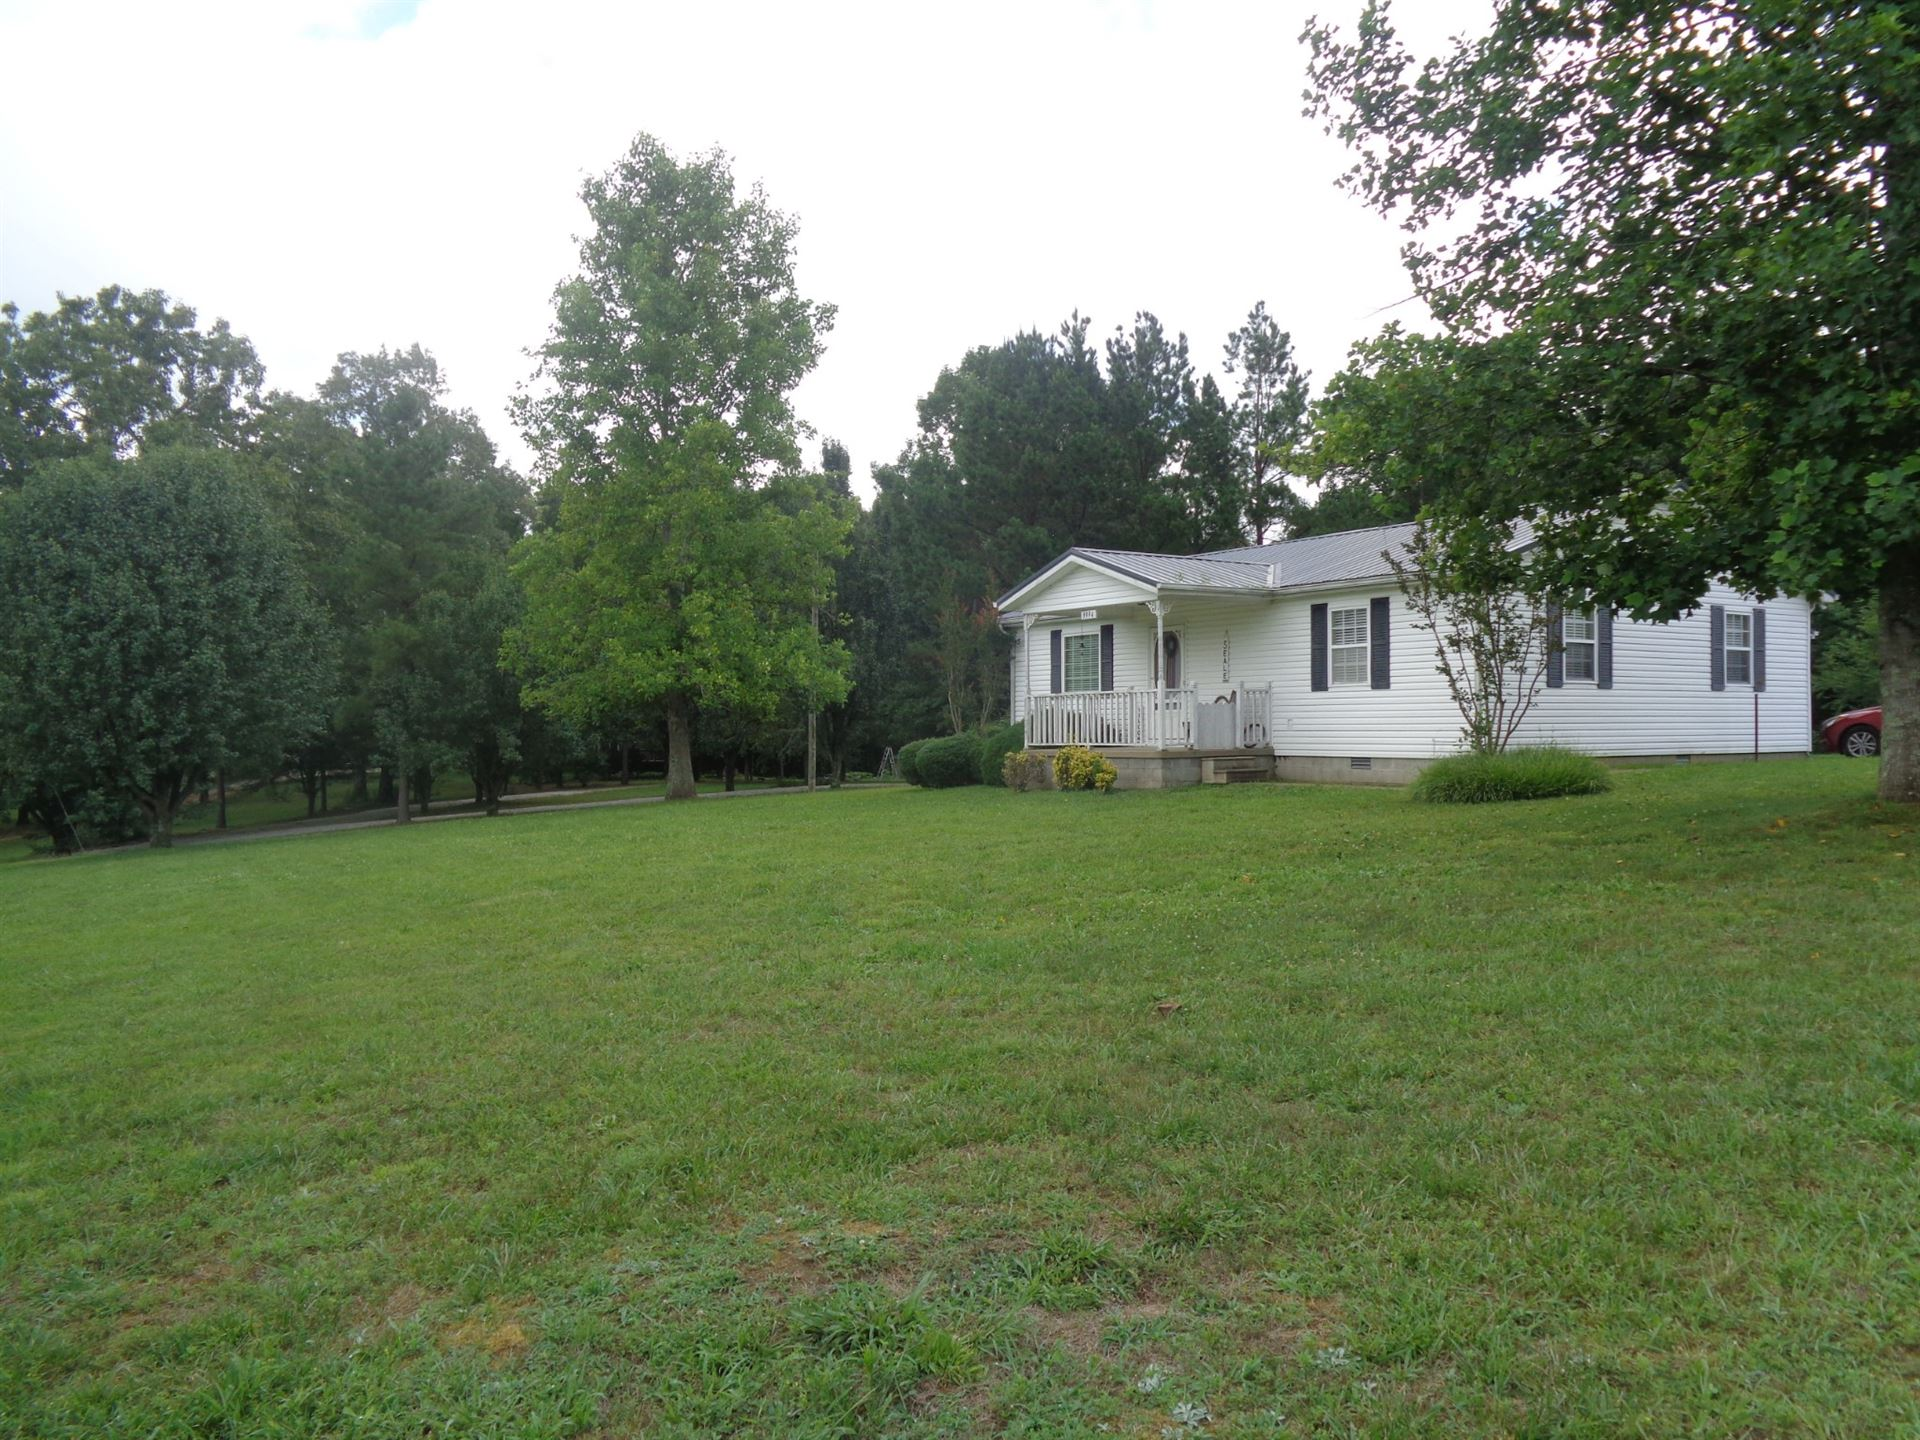 Photo of 3994 Buffalo Rd, Summertown, TN 38483 (MLS # 2168650)